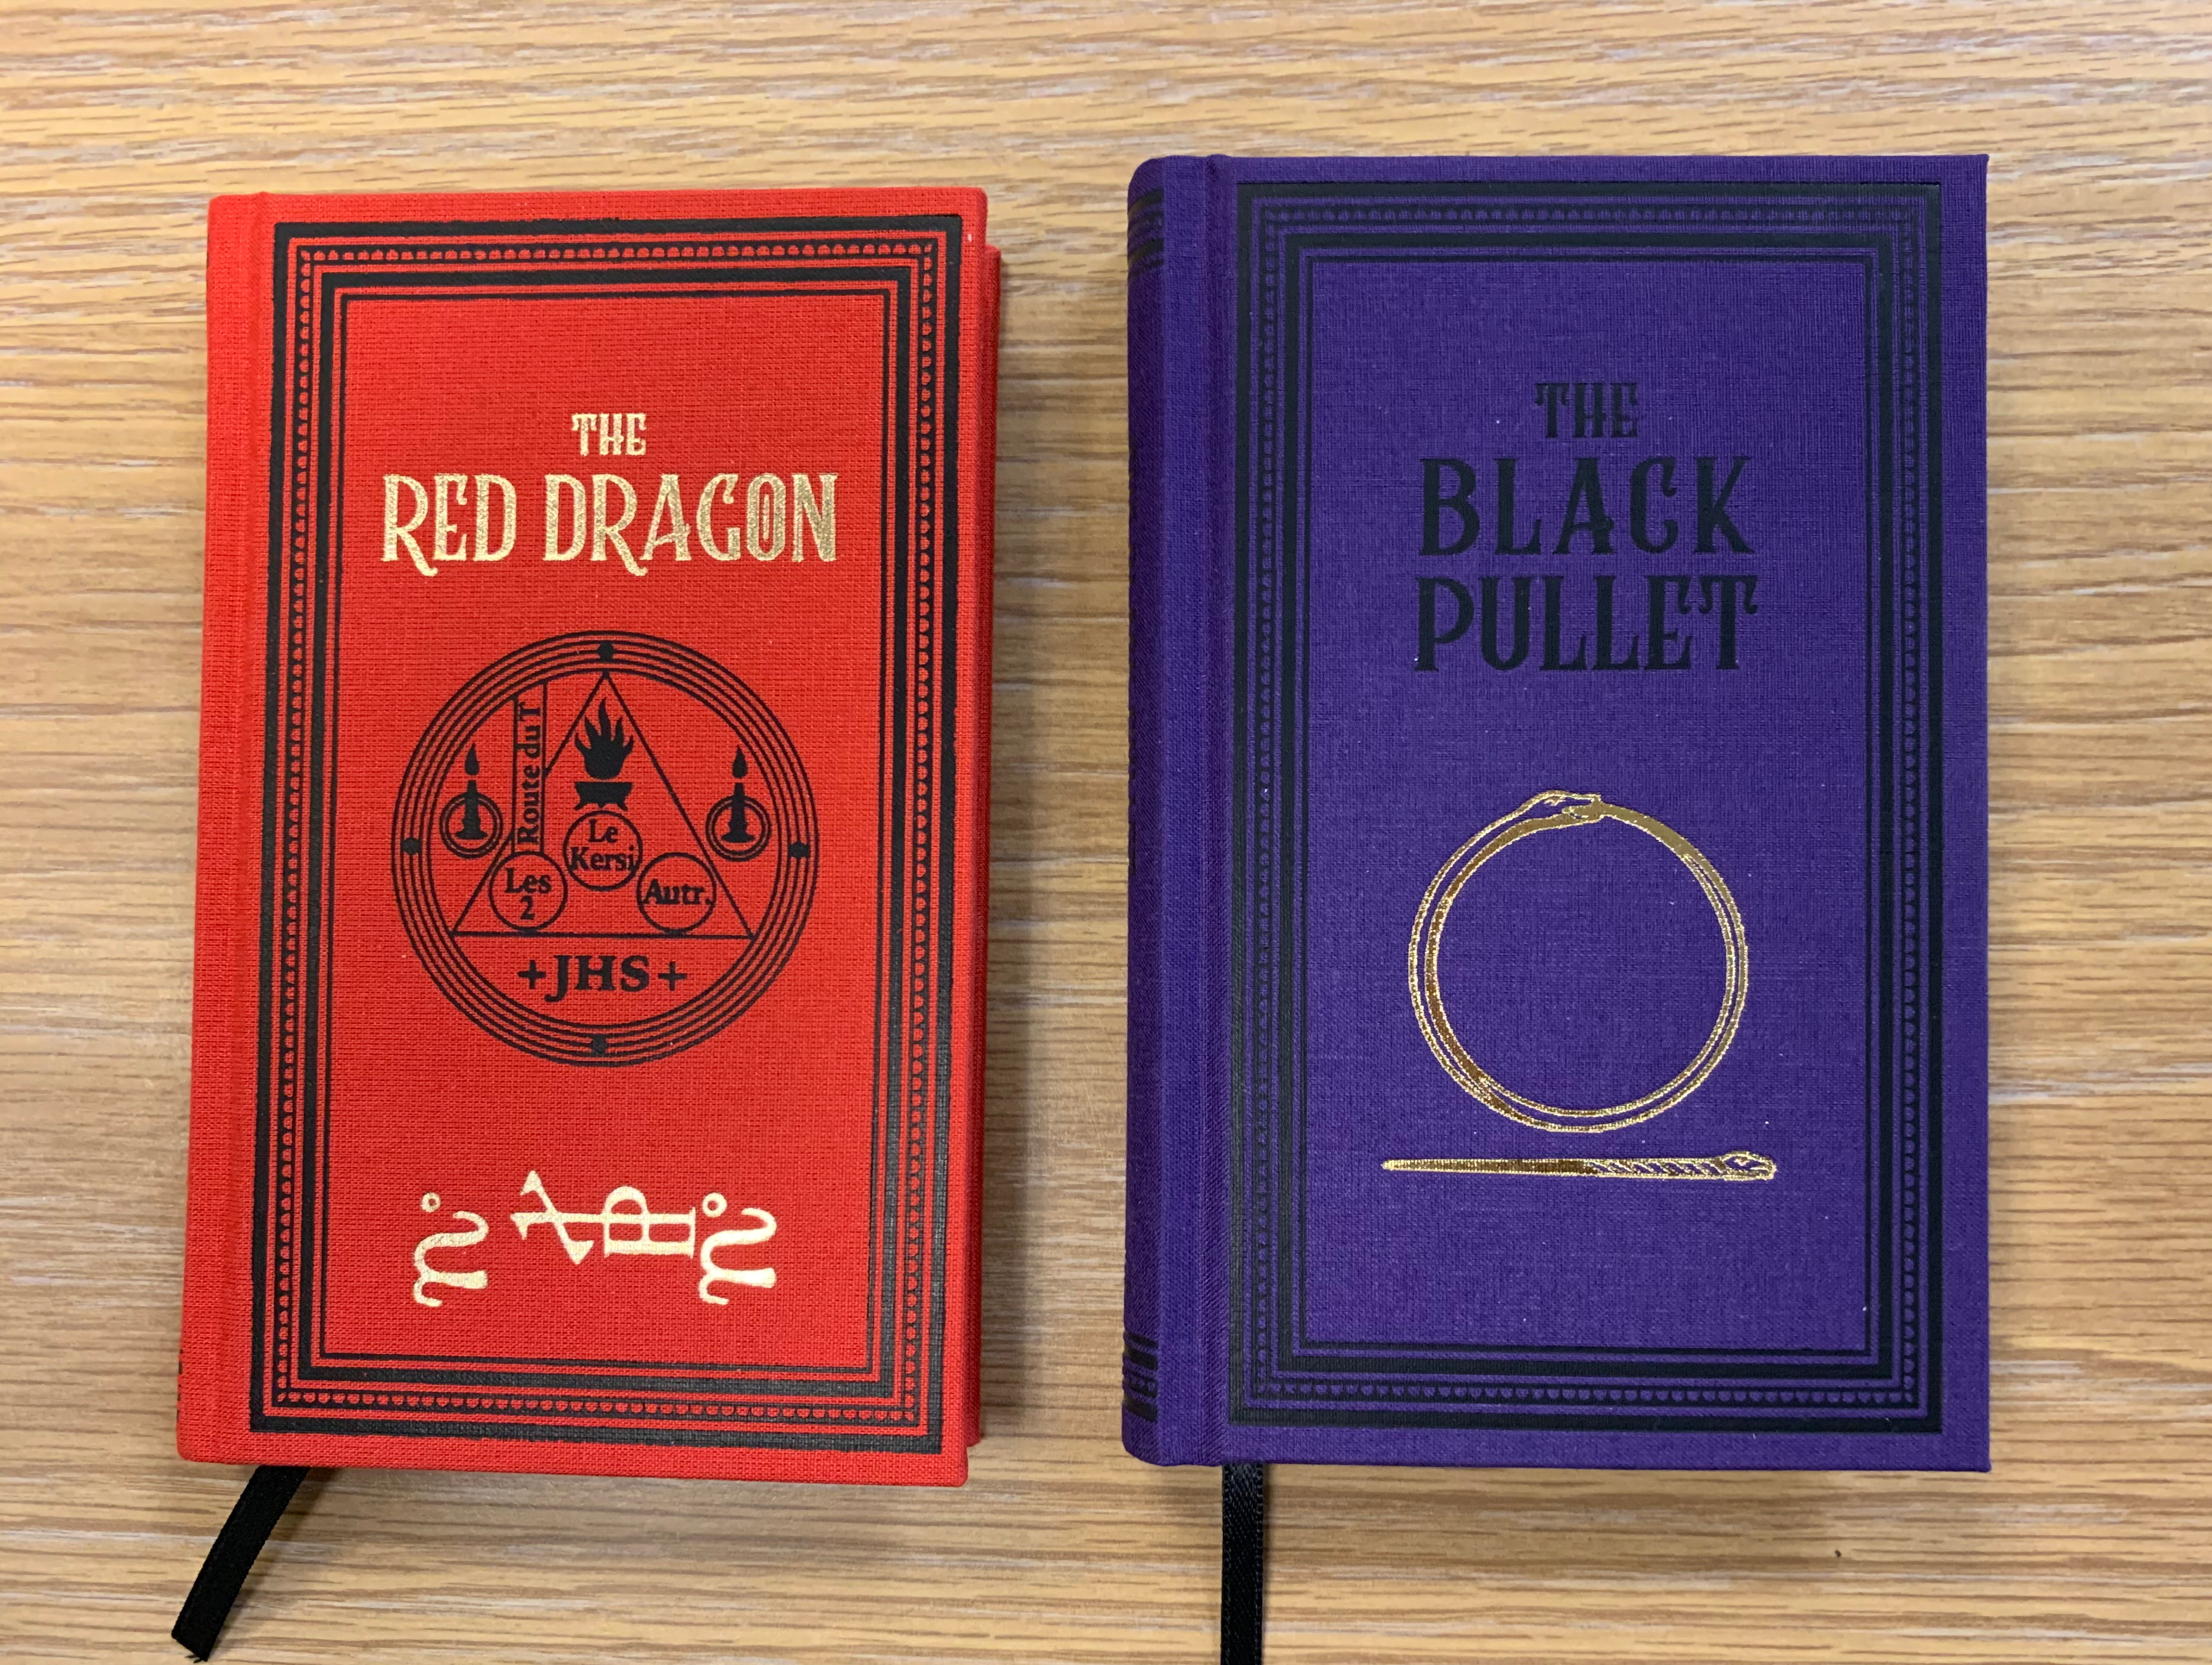 The Red Dragon and Black Pullet from Black Letter Press